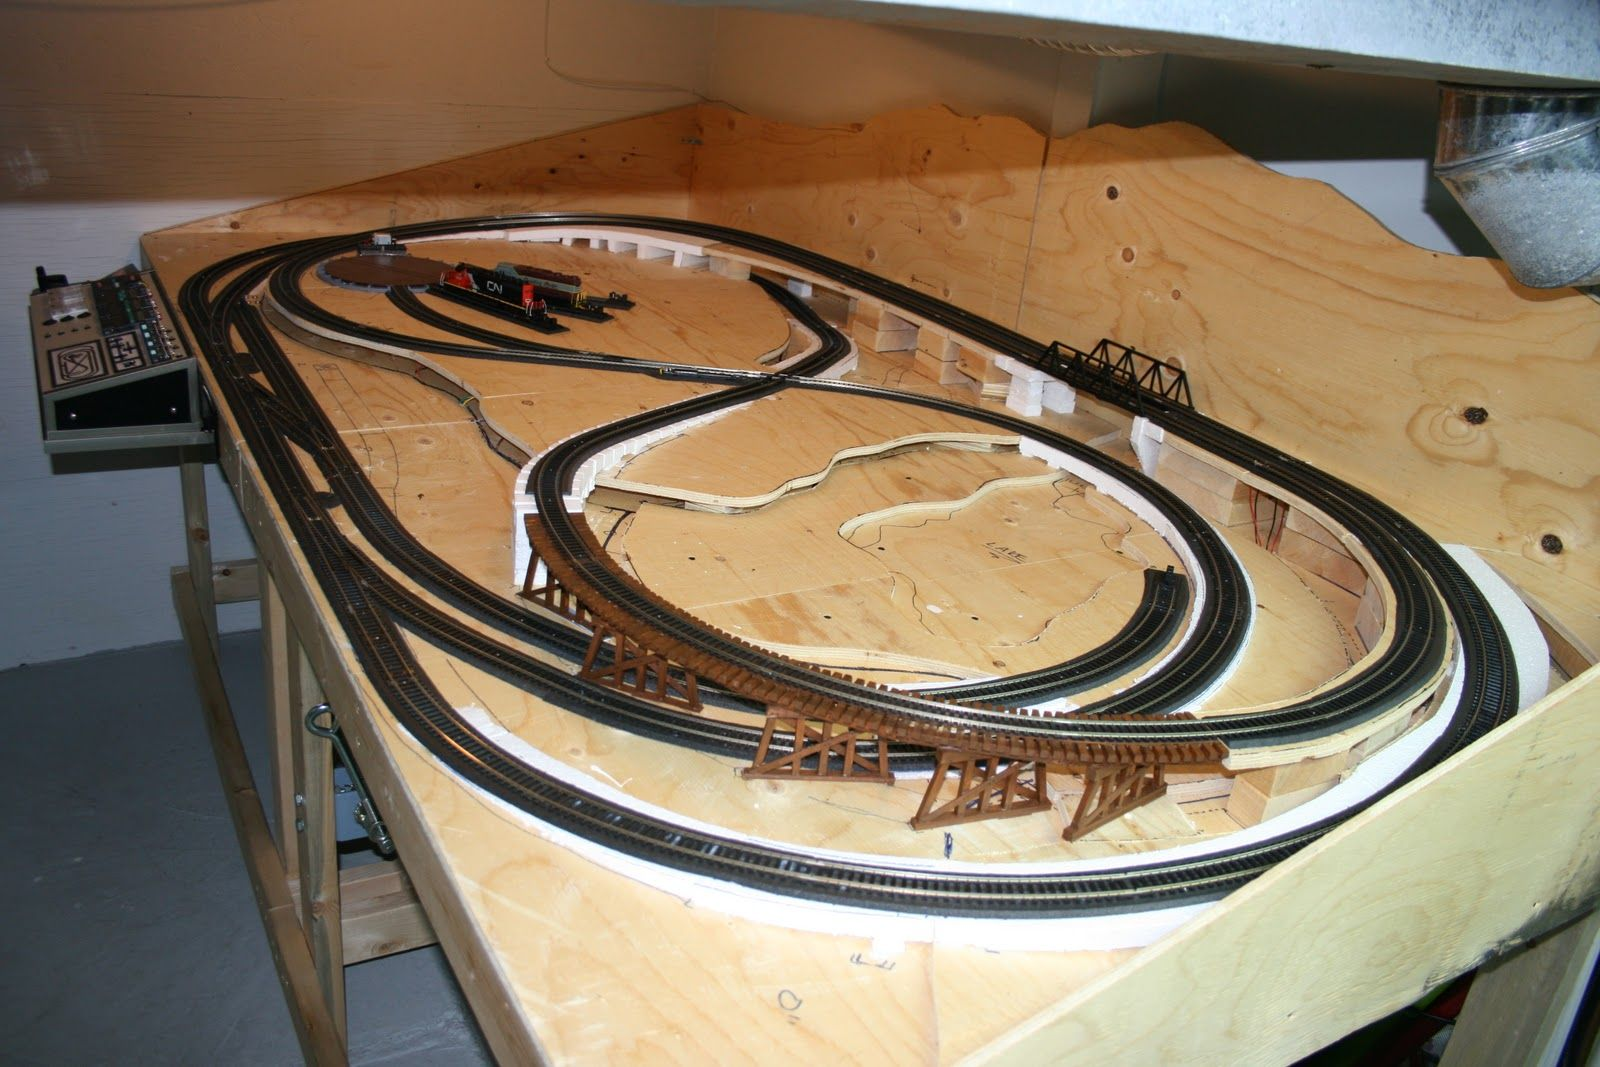 Afbeeldingsresultaat voor mountain ho train layouts treinbaan ontwerp pinterest - Ho scale layouts for small spaces concept ...